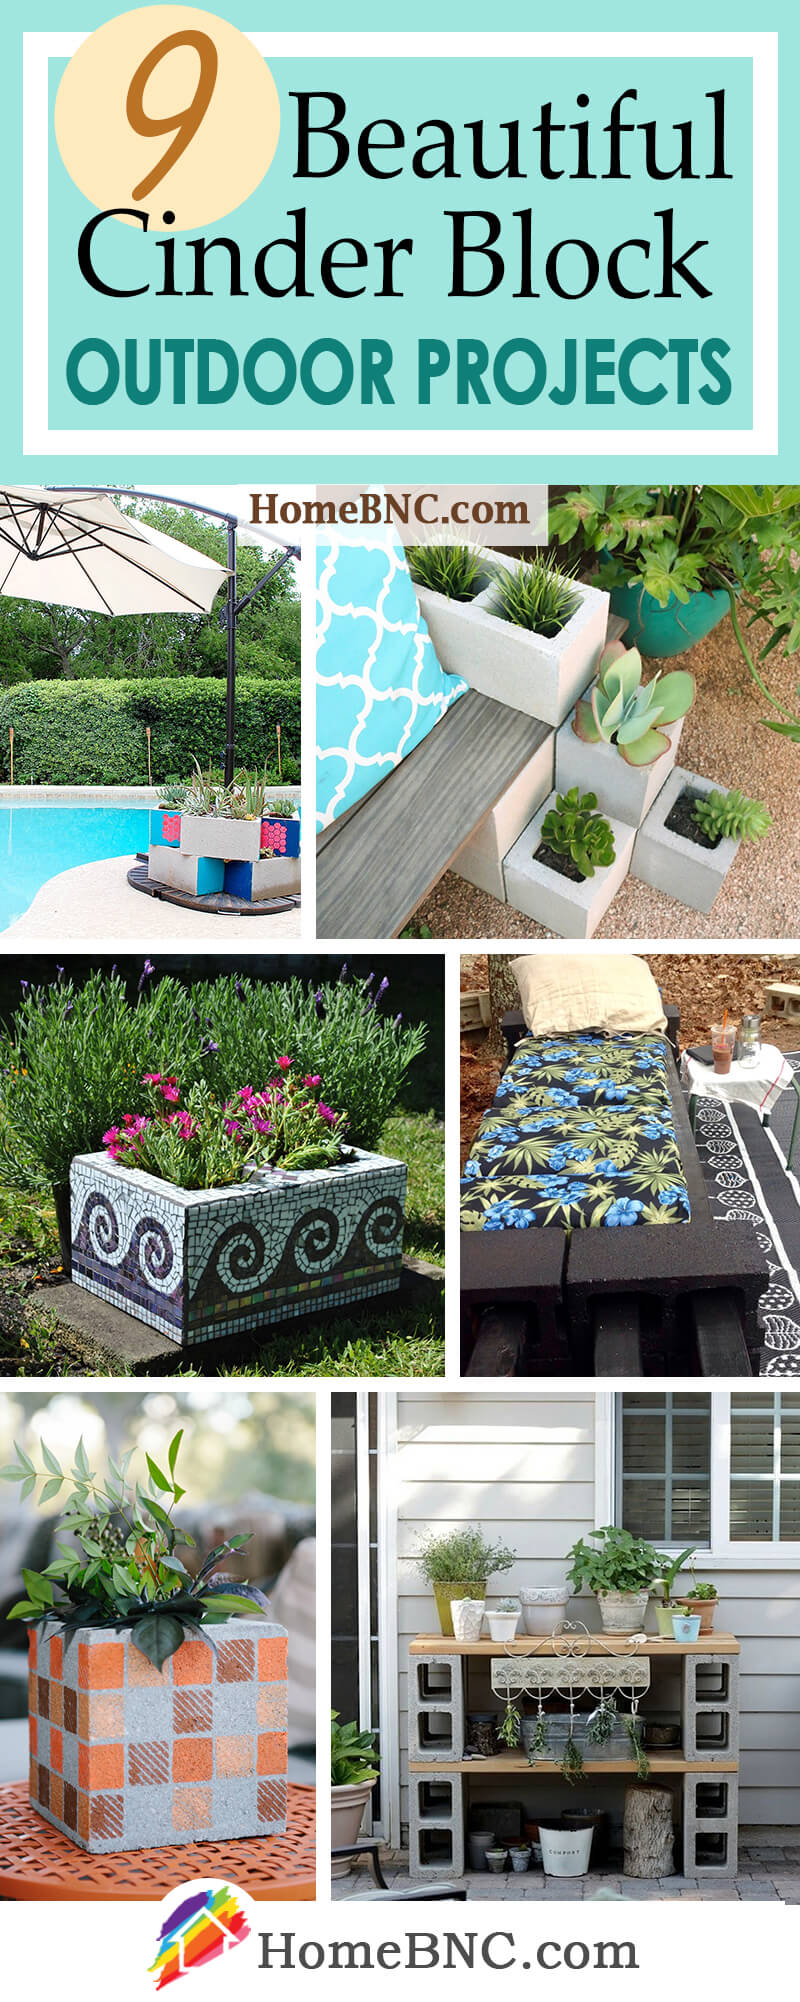 Cinder Block Outdoor Projects